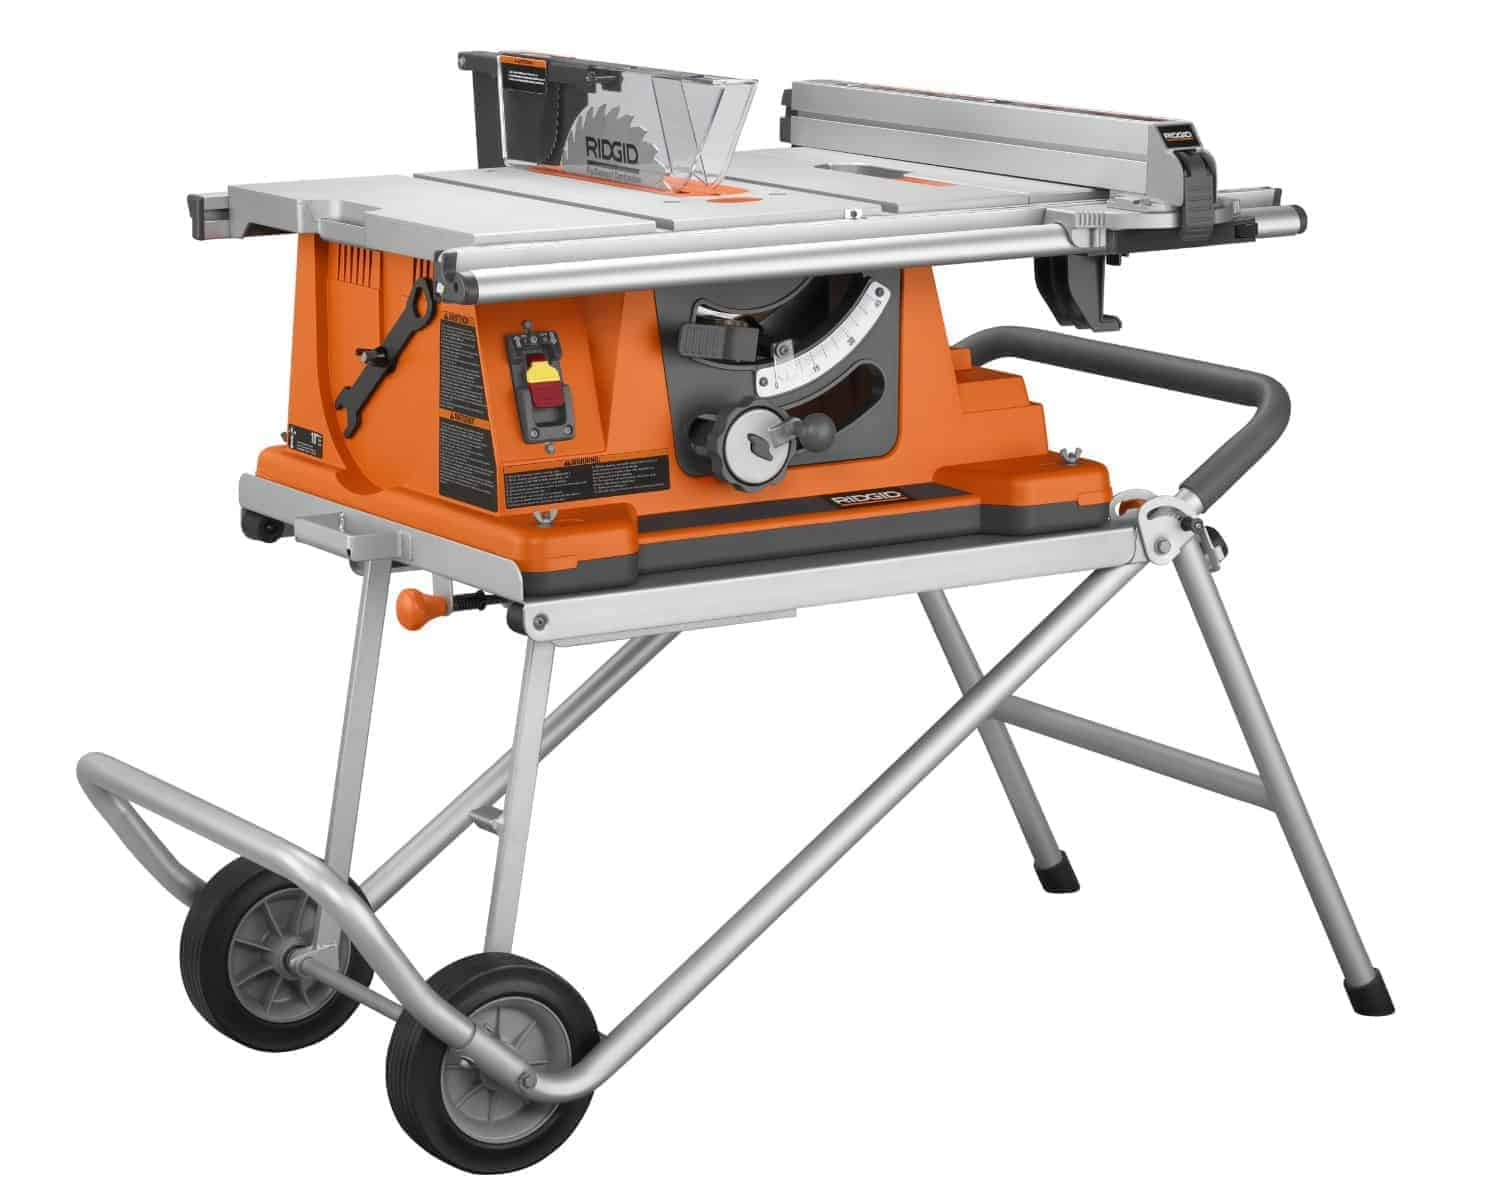 Ridgid R4510 Heavy-Duty Portable Table Saw with Stand review